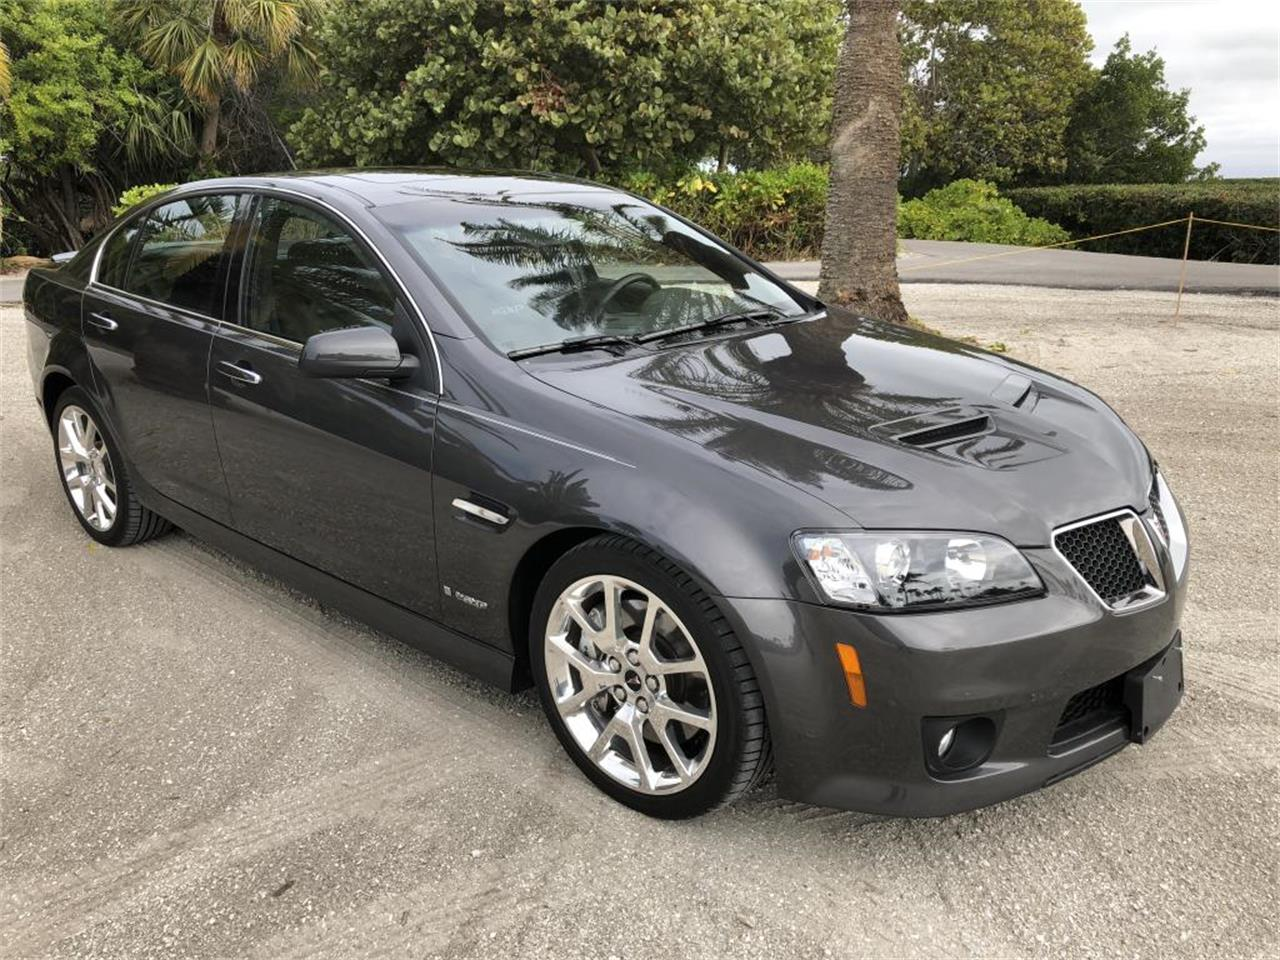 2009 Pontiac G8 for sale in Milford City, CT – photo 7